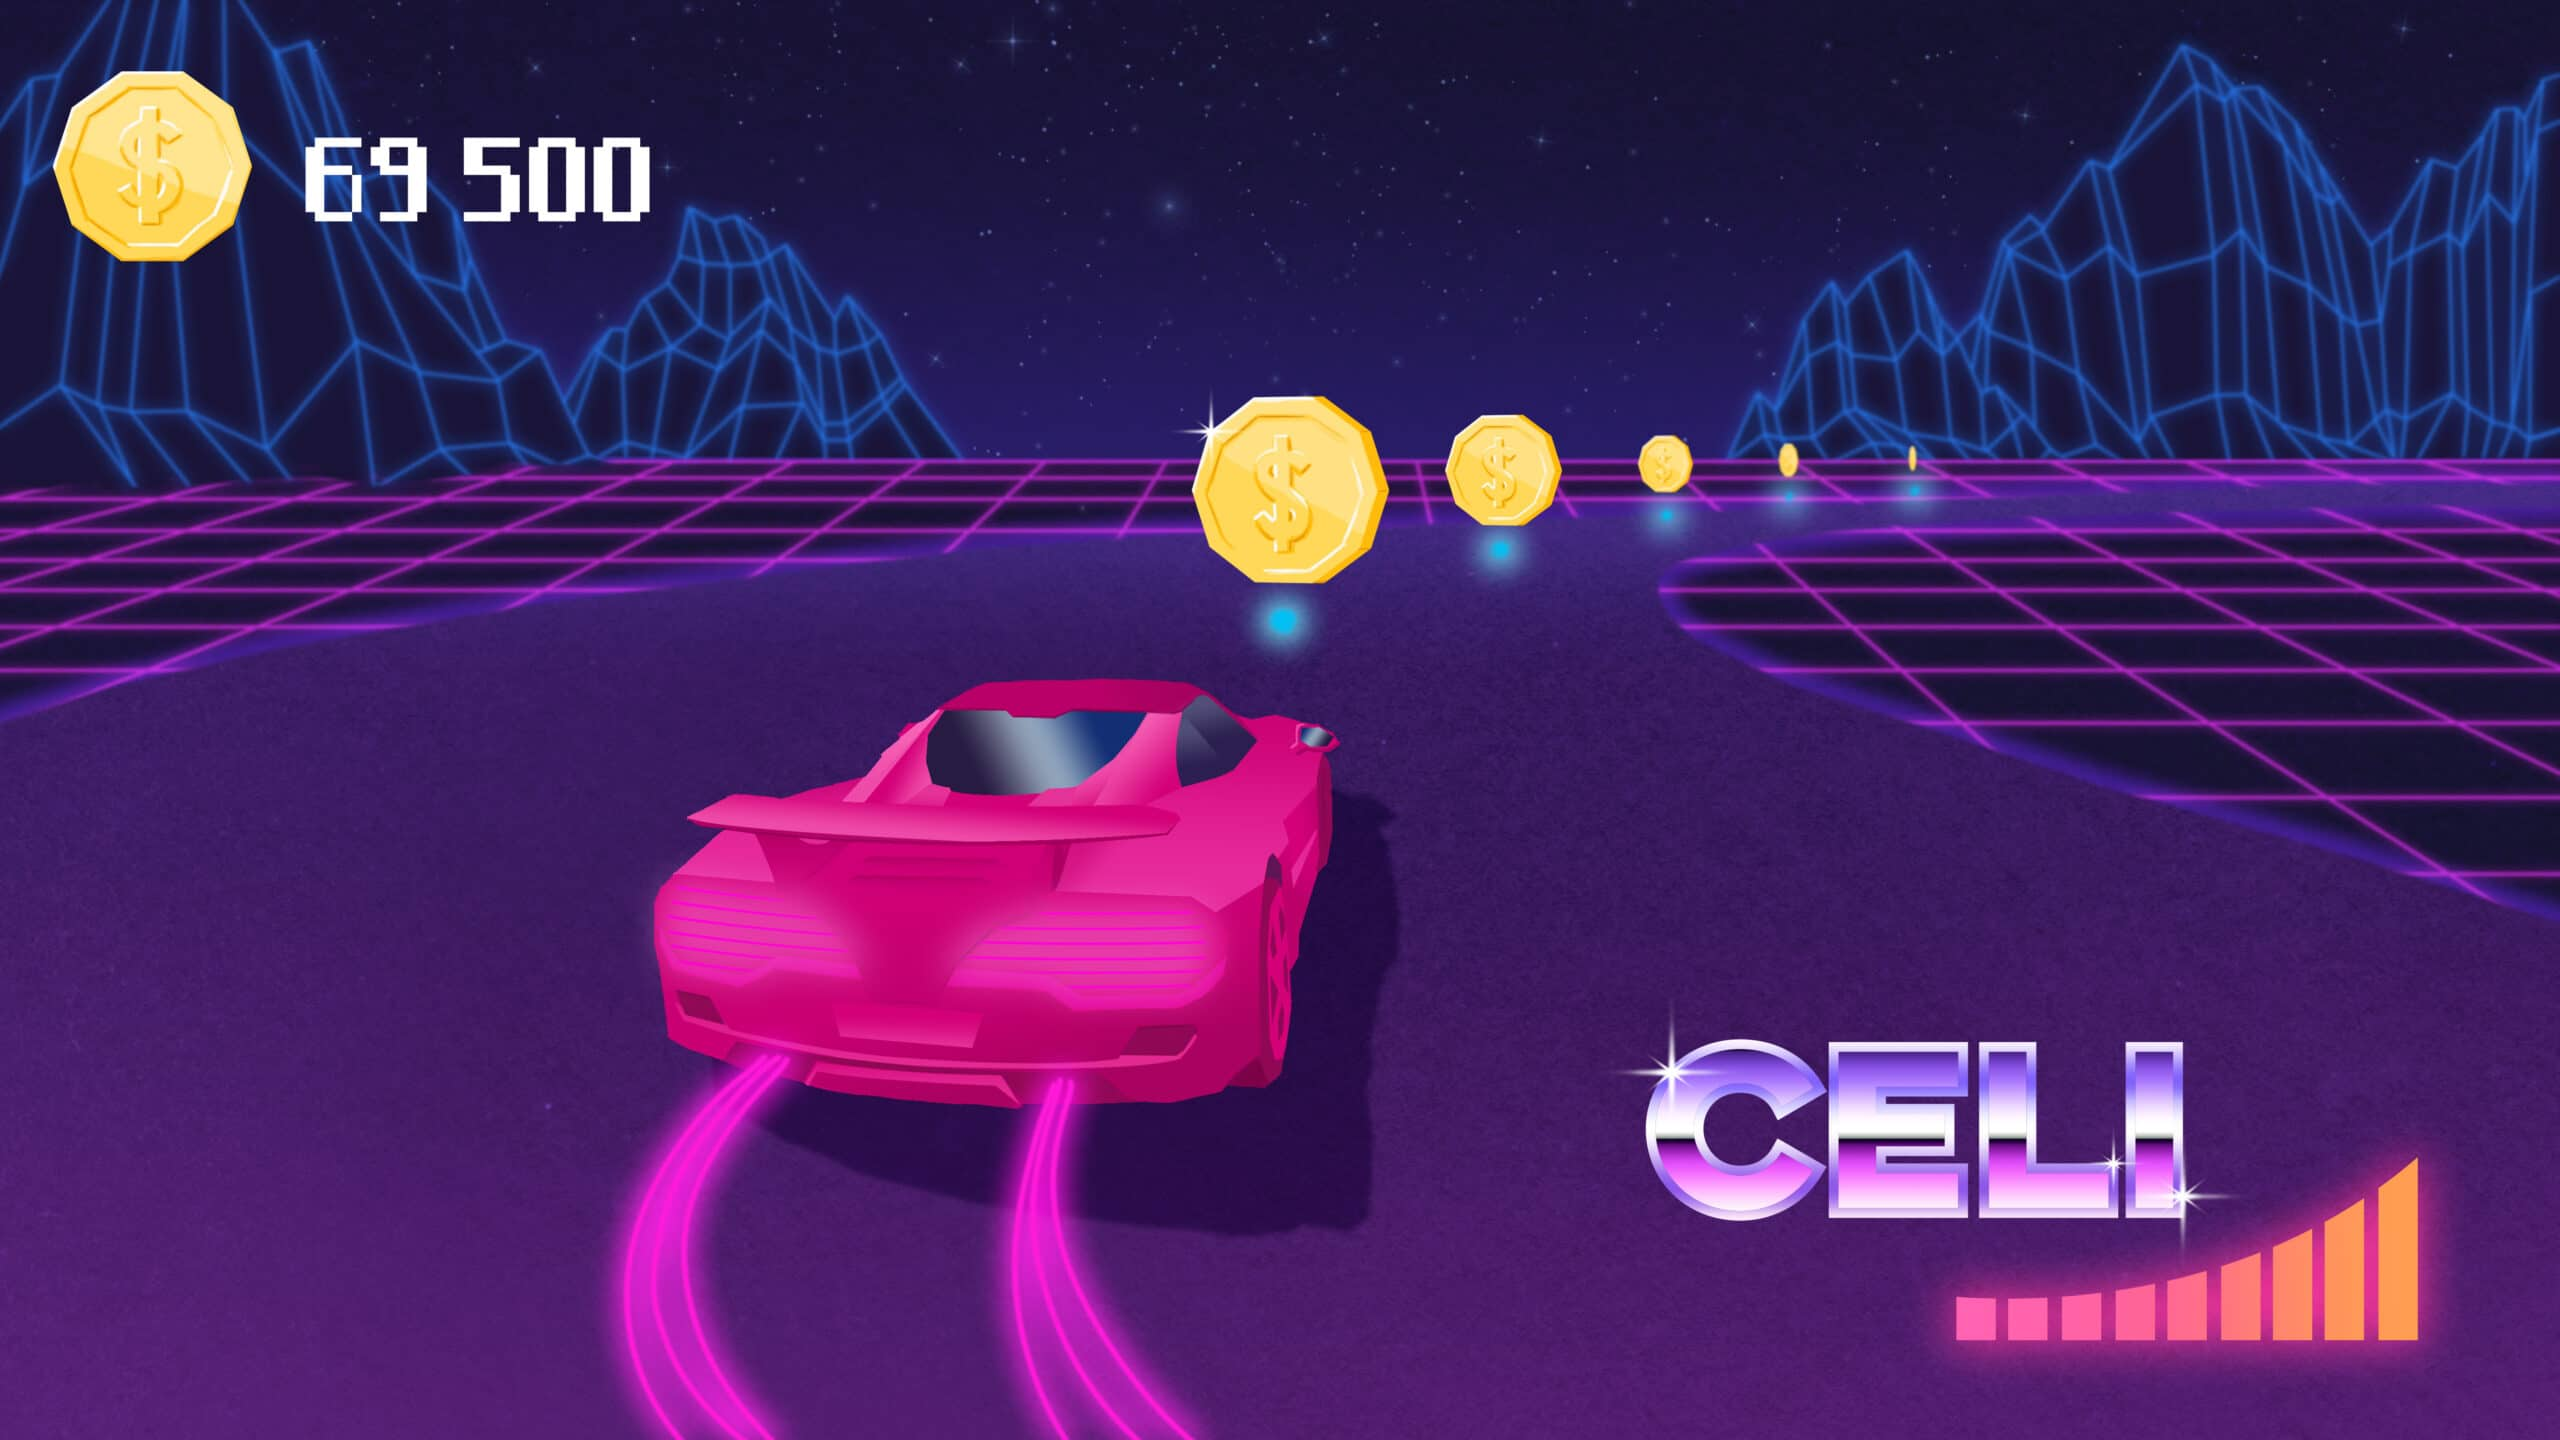 Videogame racecar collects coins on a stylized racetrack.